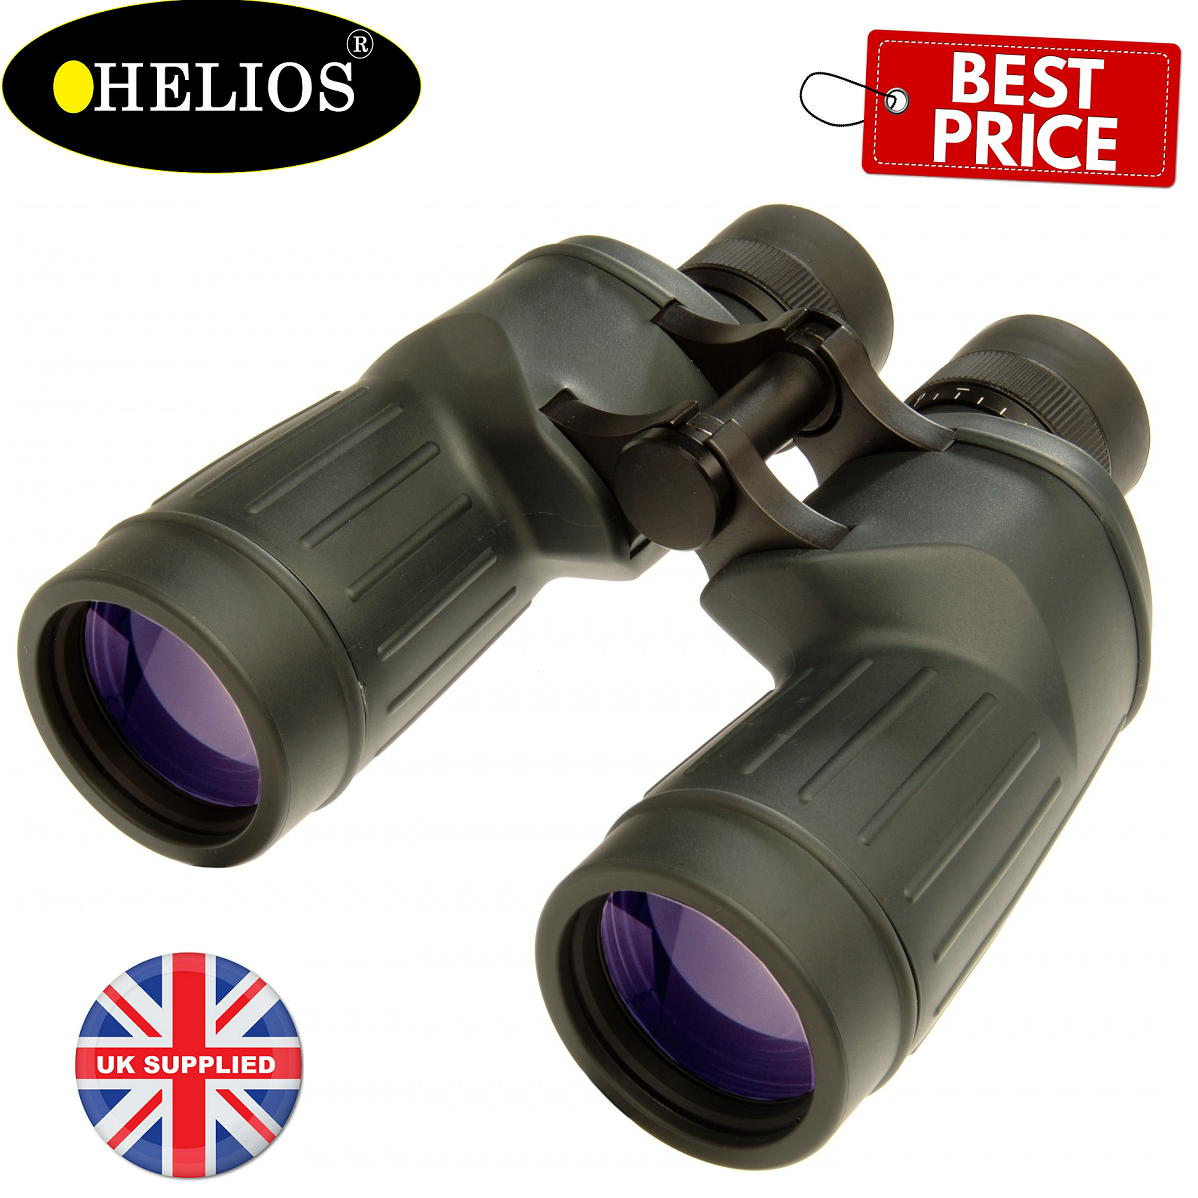 Helios Stellar II 7x50 Water Proof Obervation Binoculars